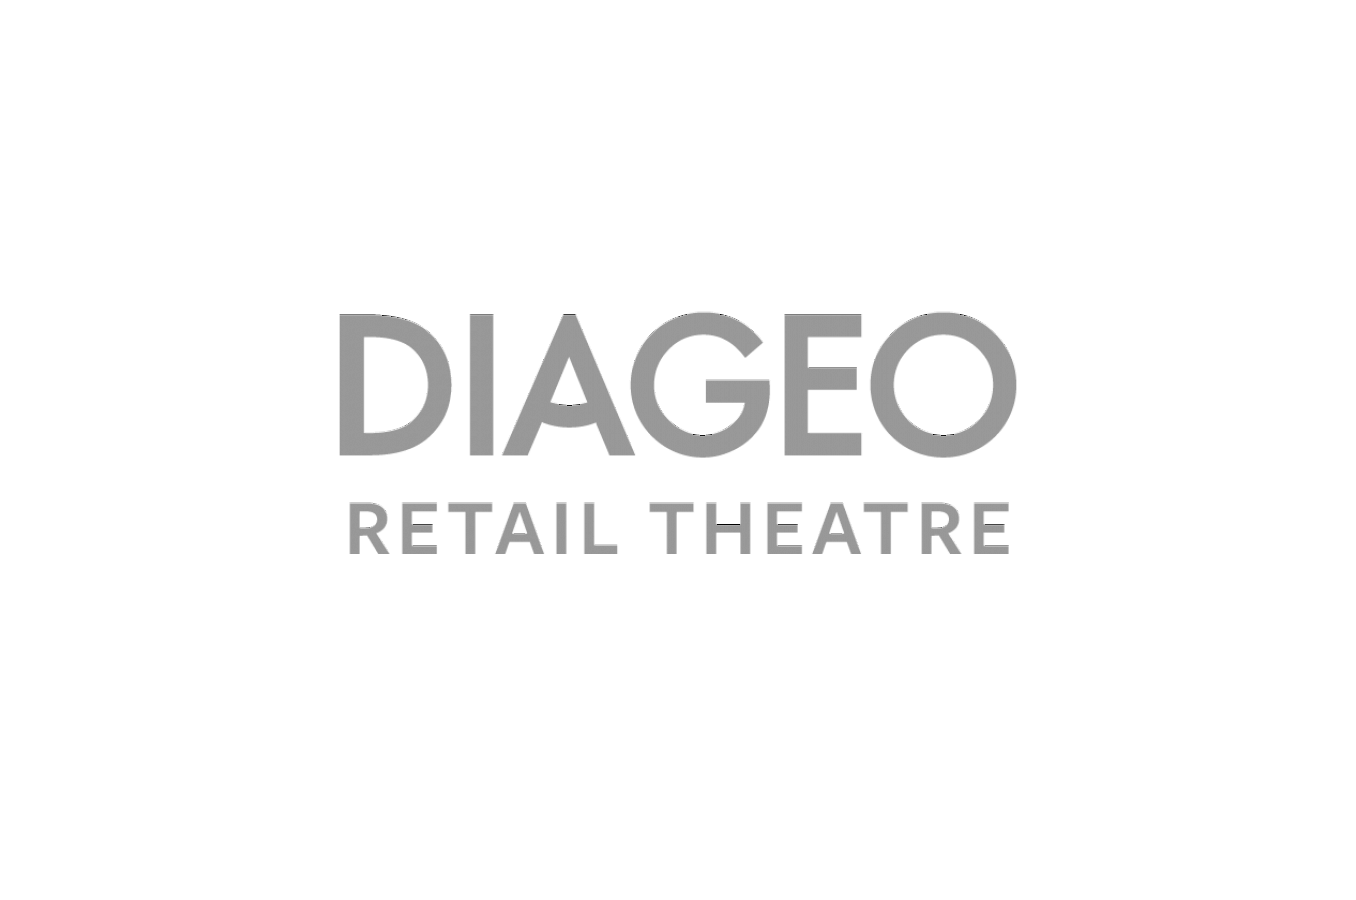 Diageo Retail Theatre